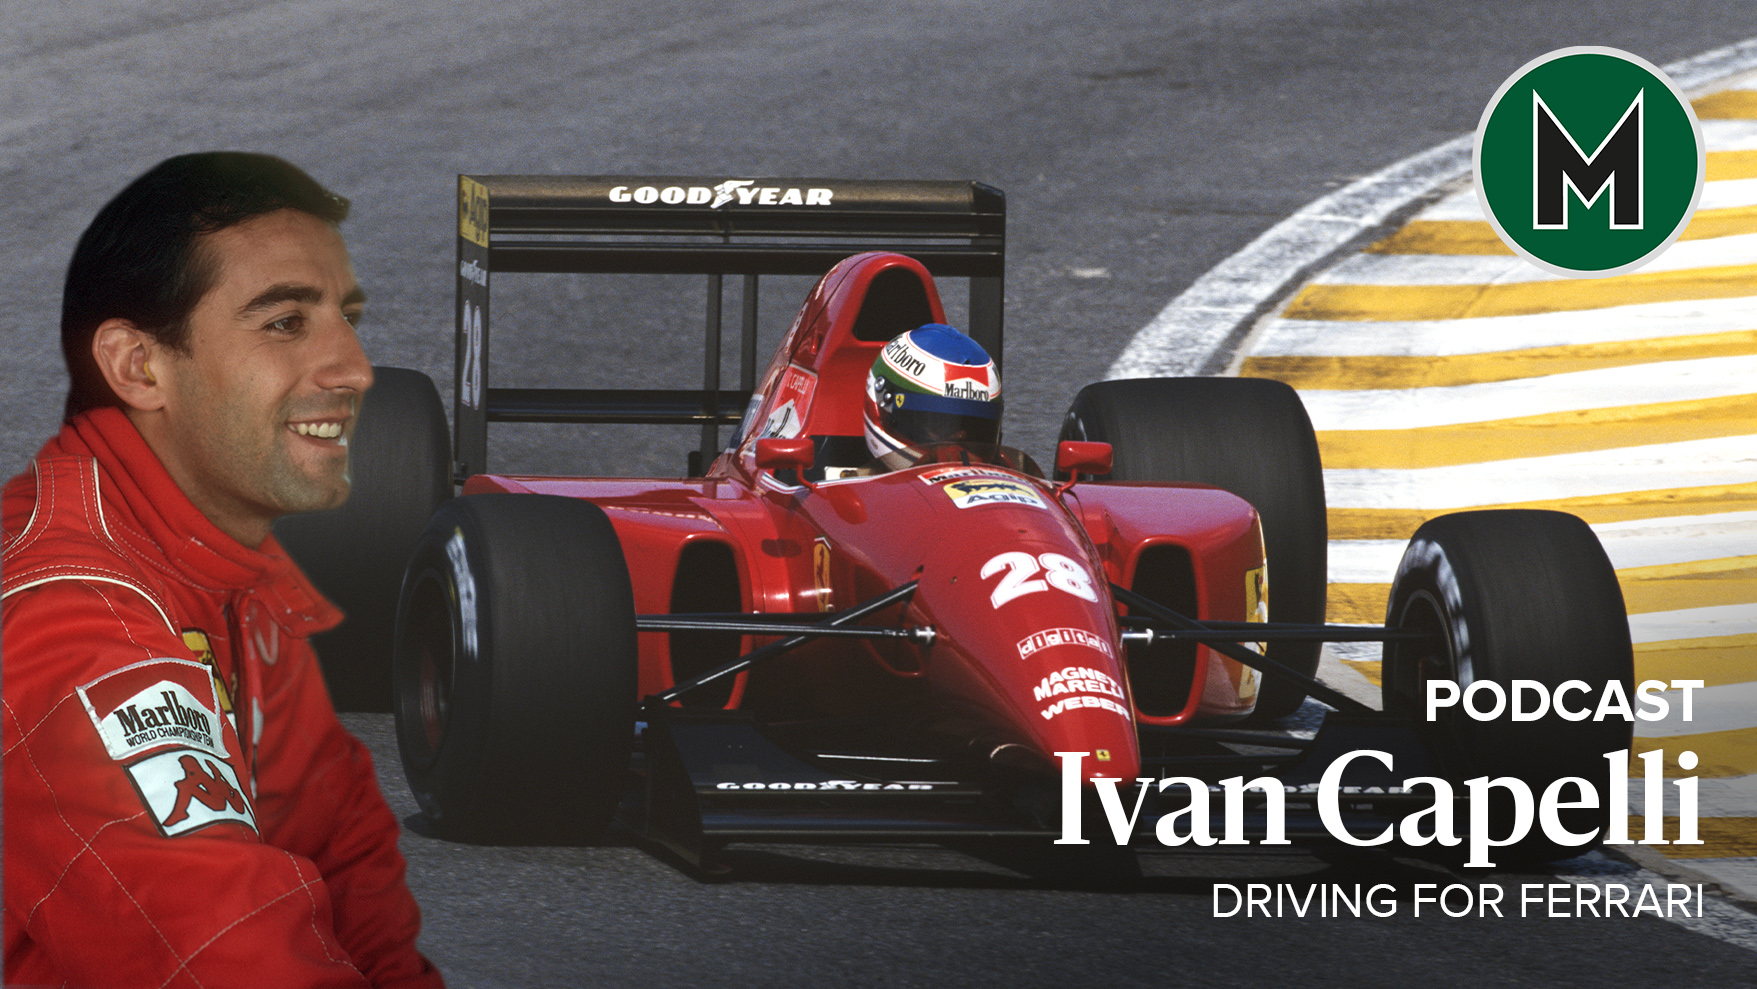 Podcast: Ivan Capelli, Driving for Ferrari